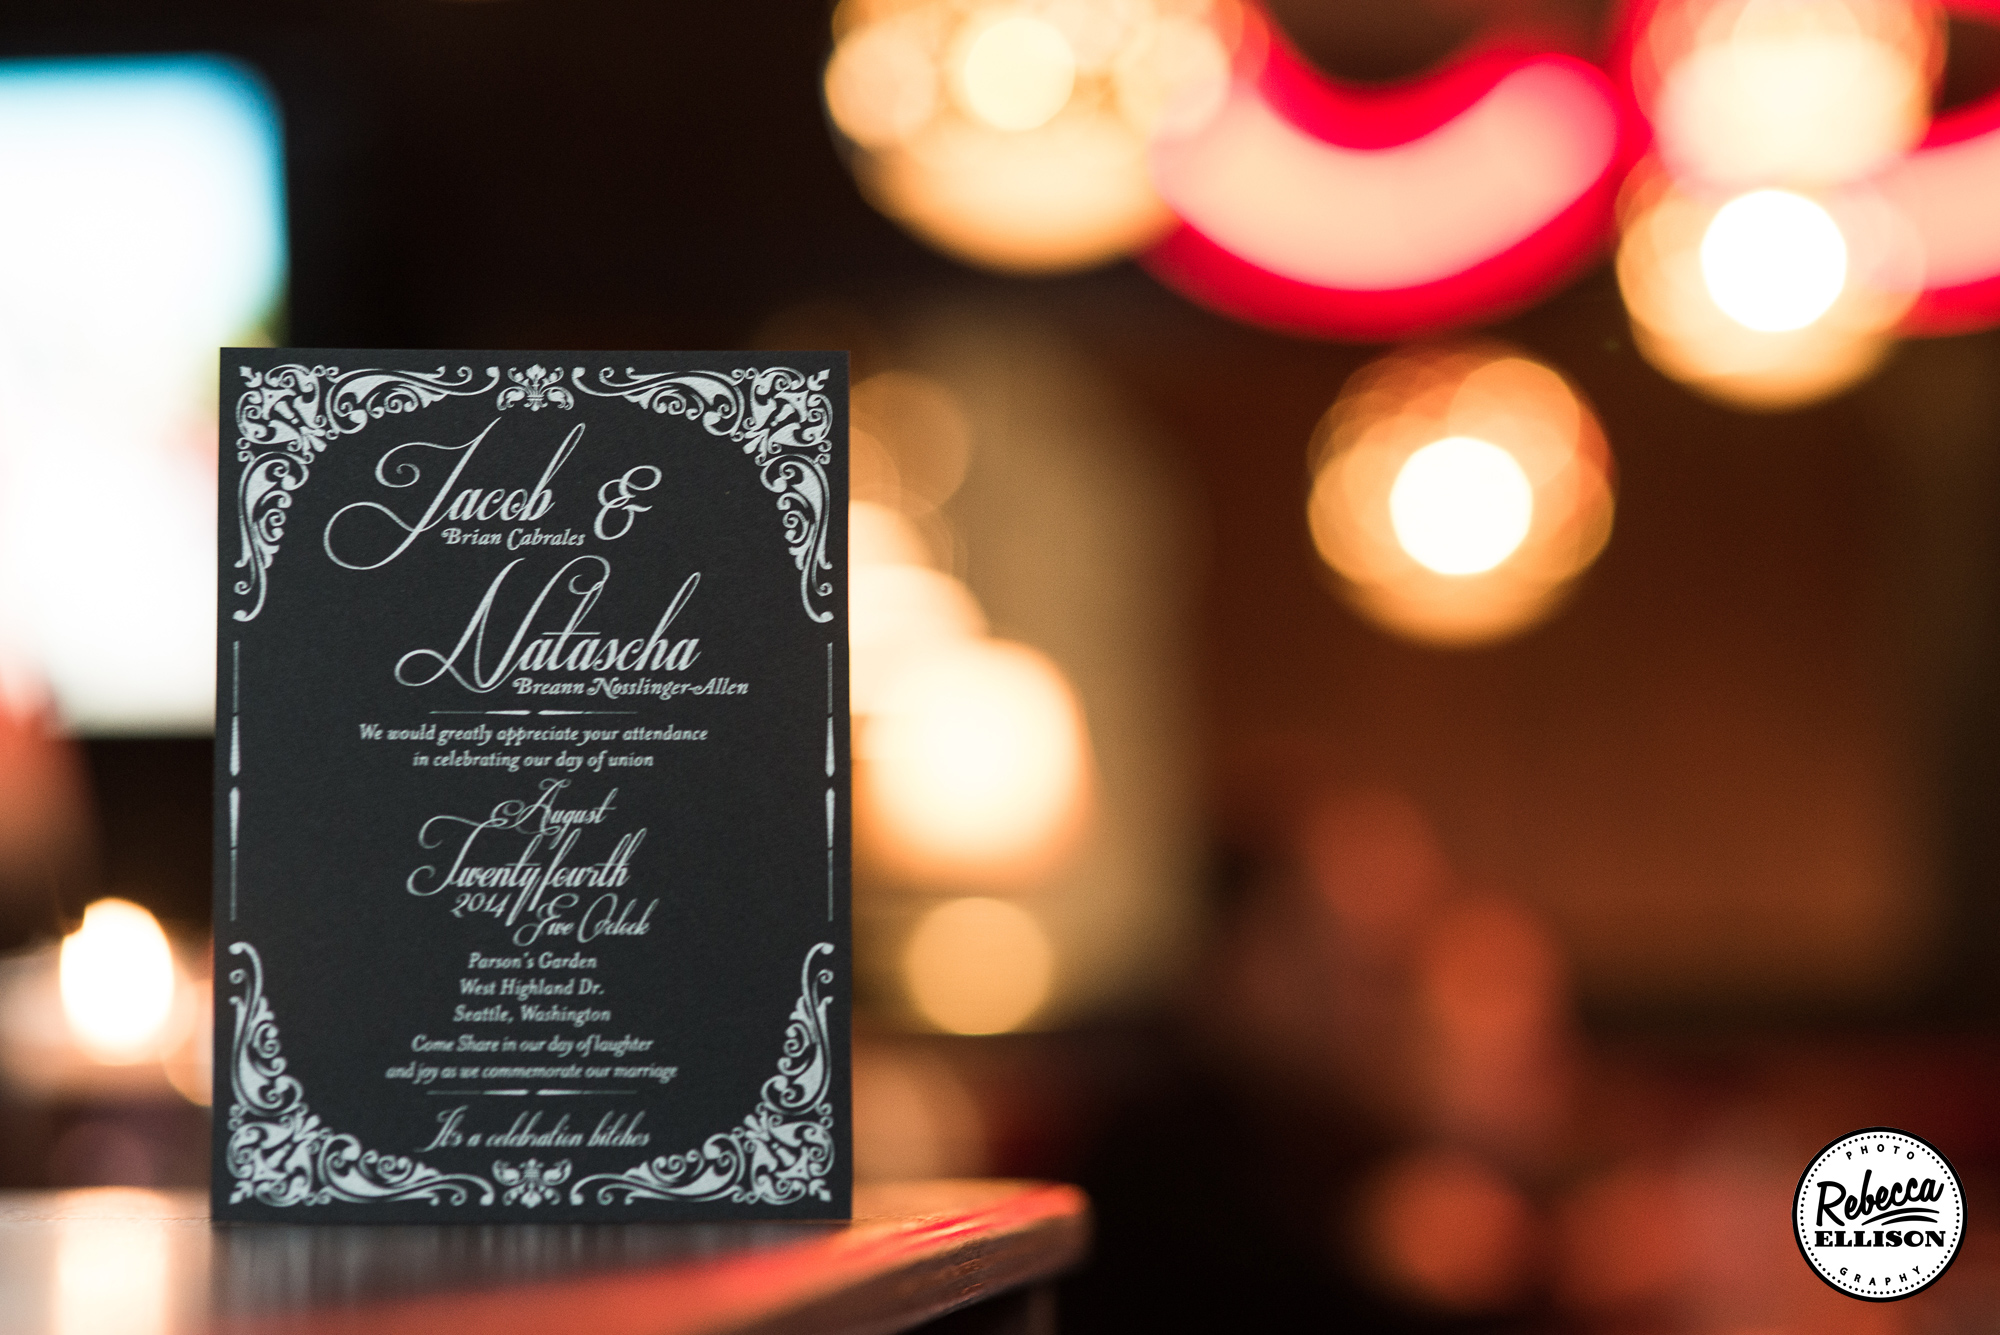 Black and white wedding invitation with neon signs in the background photographed by Seattle wedding photographer Rebecca Ellison